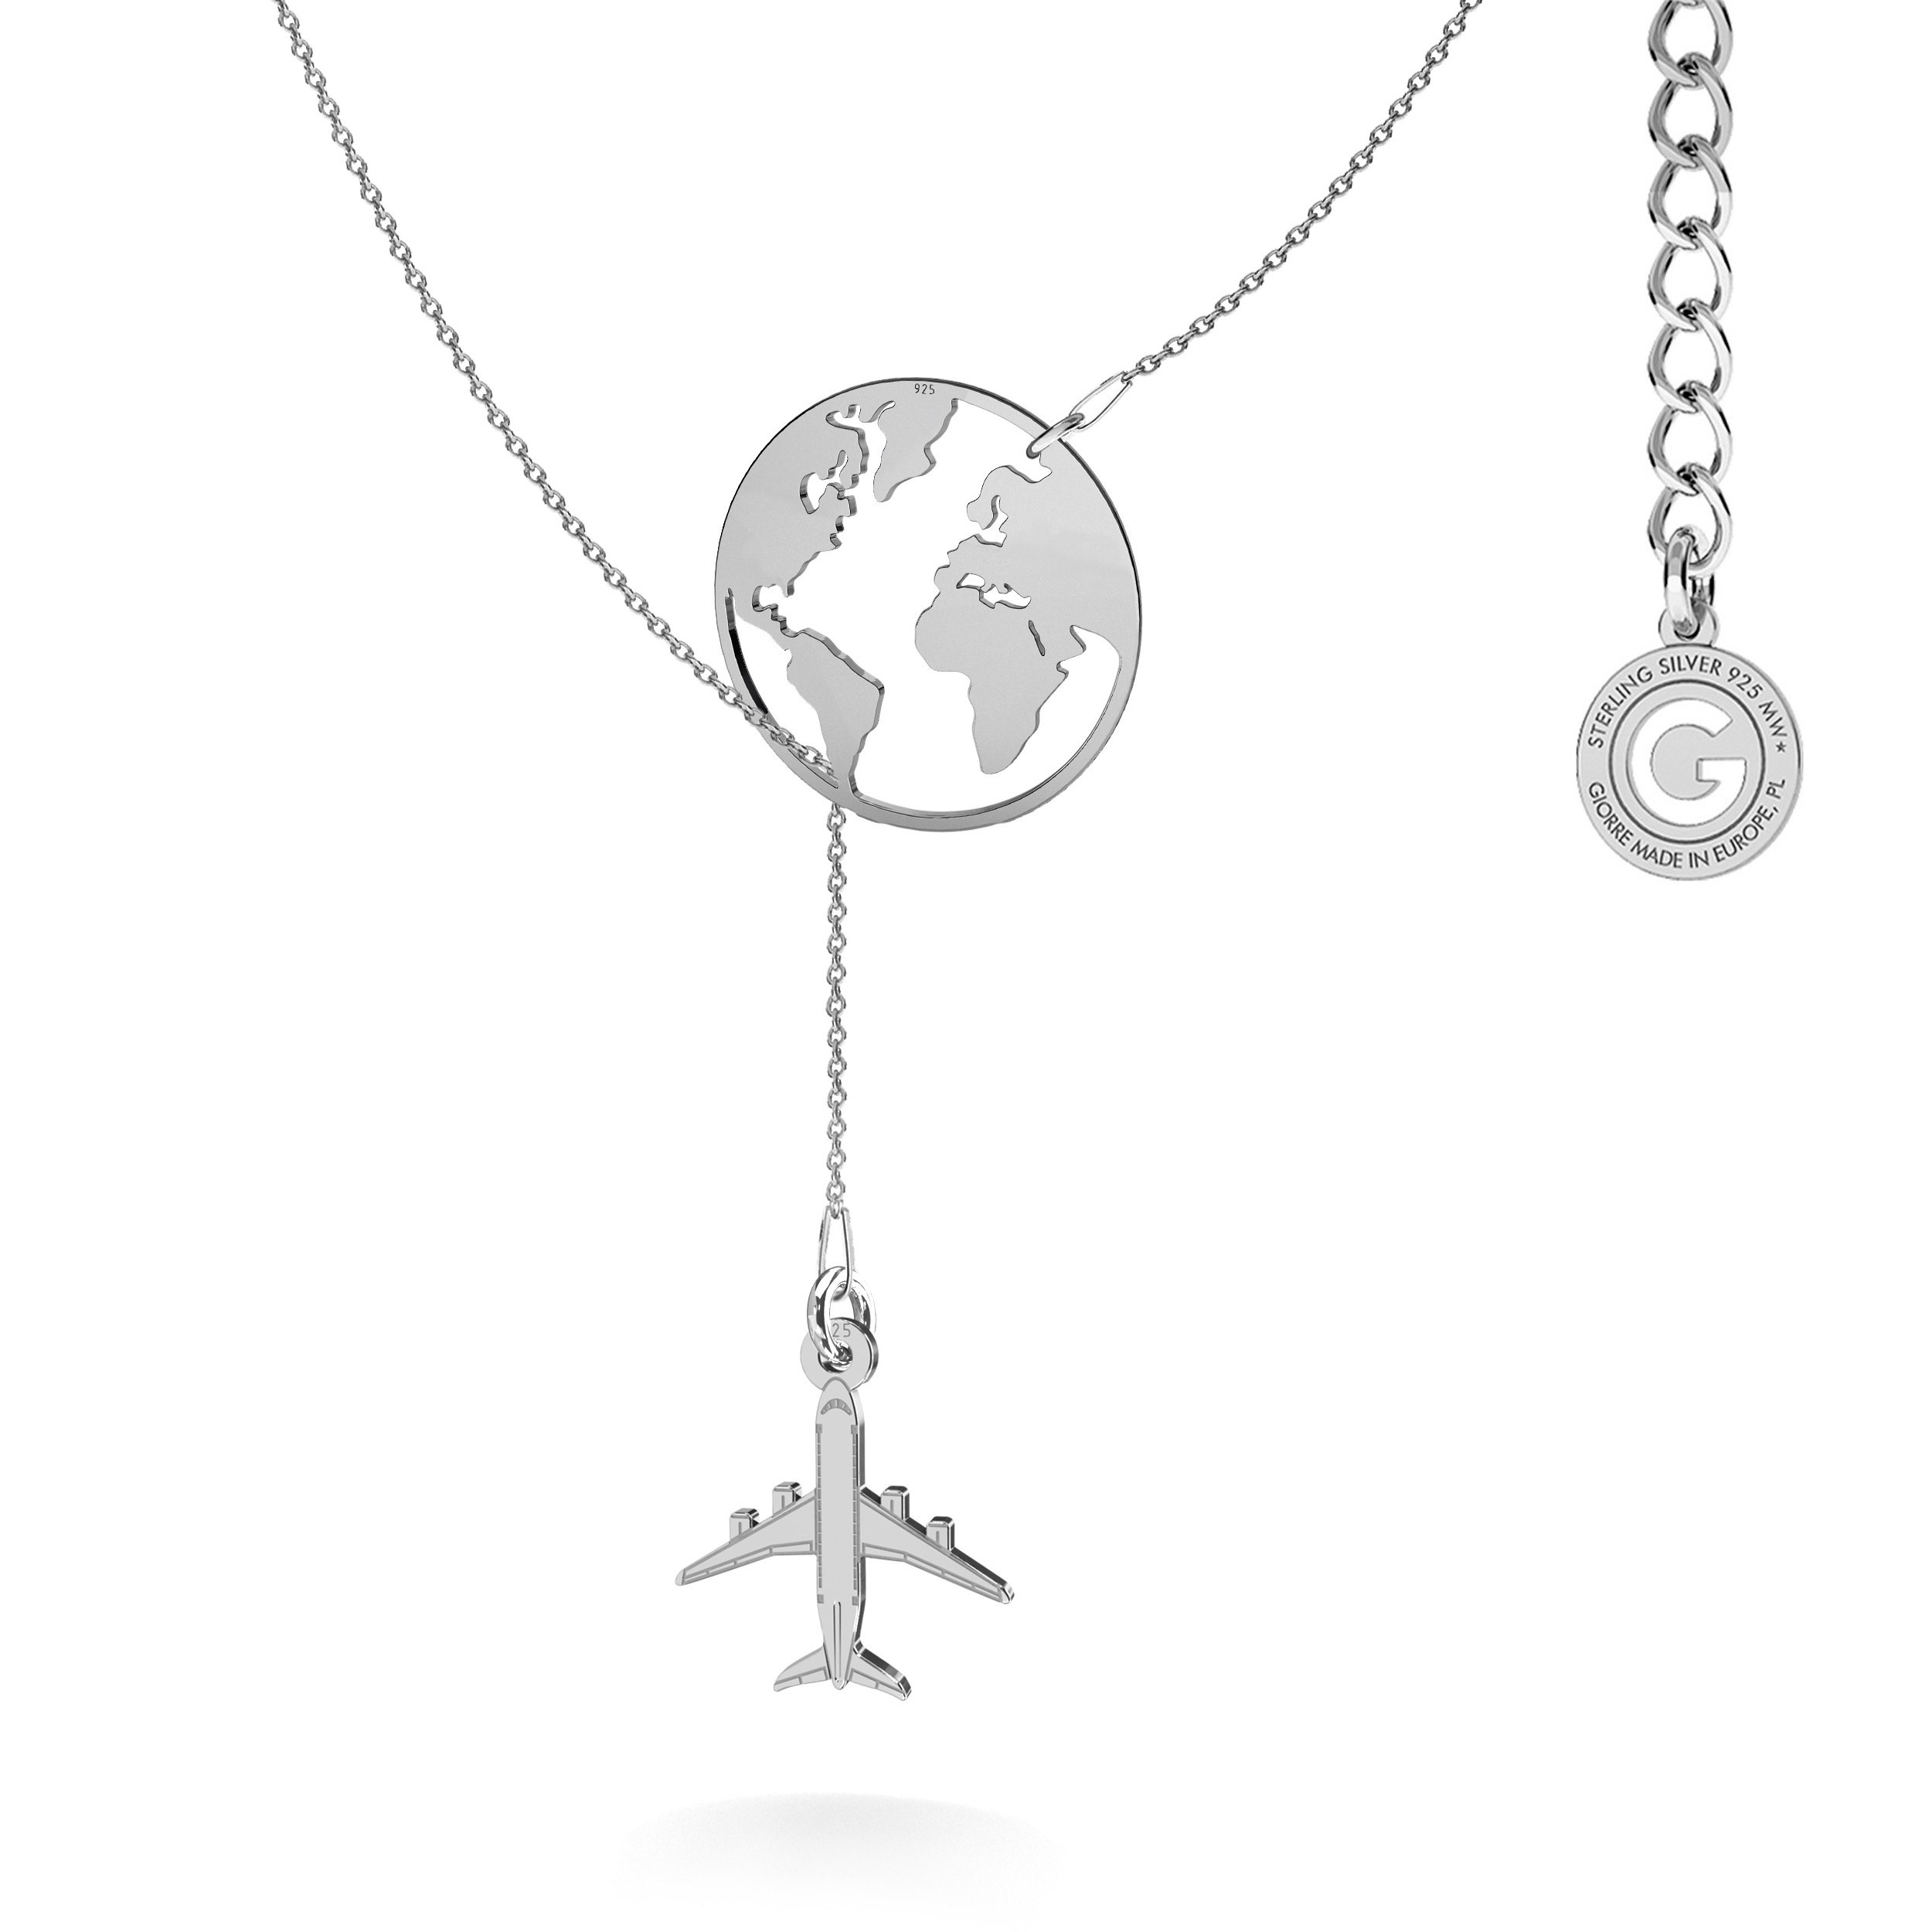 MON DÉFI Necklace - Globe, satin silver 925